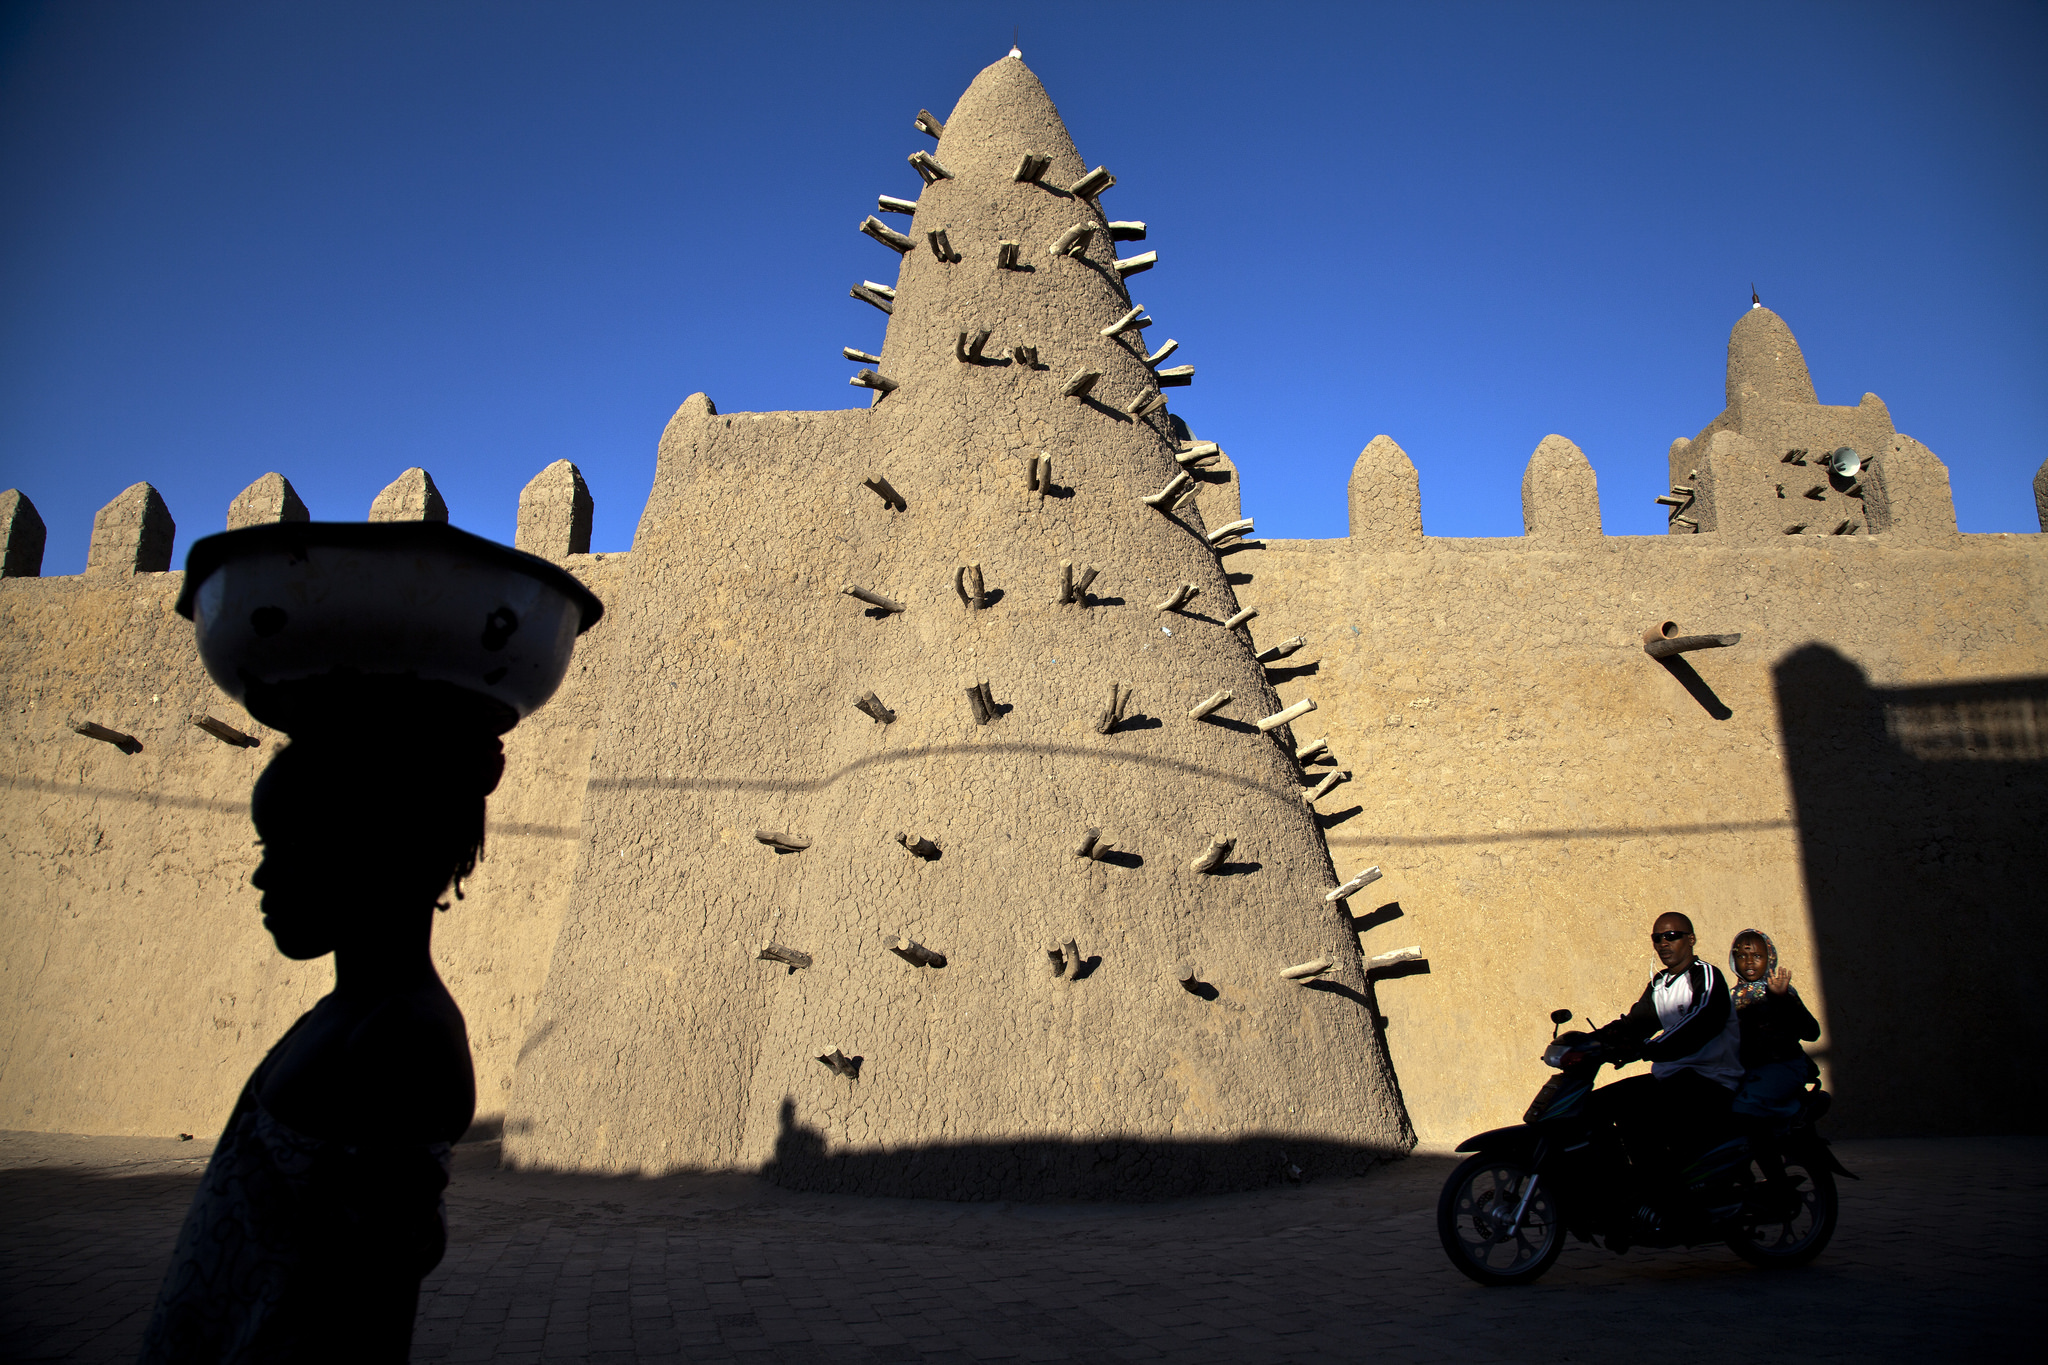 Residents of Timbuktu pass by the Djingareyber Mosque. The mosque is one of the historical architectural structures (along with Sankore Mosque, Sidi Yahia Mosque and sixteen mausoleums and holy public places) which together earned Timbuktu the designation of World Heritage Site by UNESCO. Credit: UN Photo/Marco Dormino